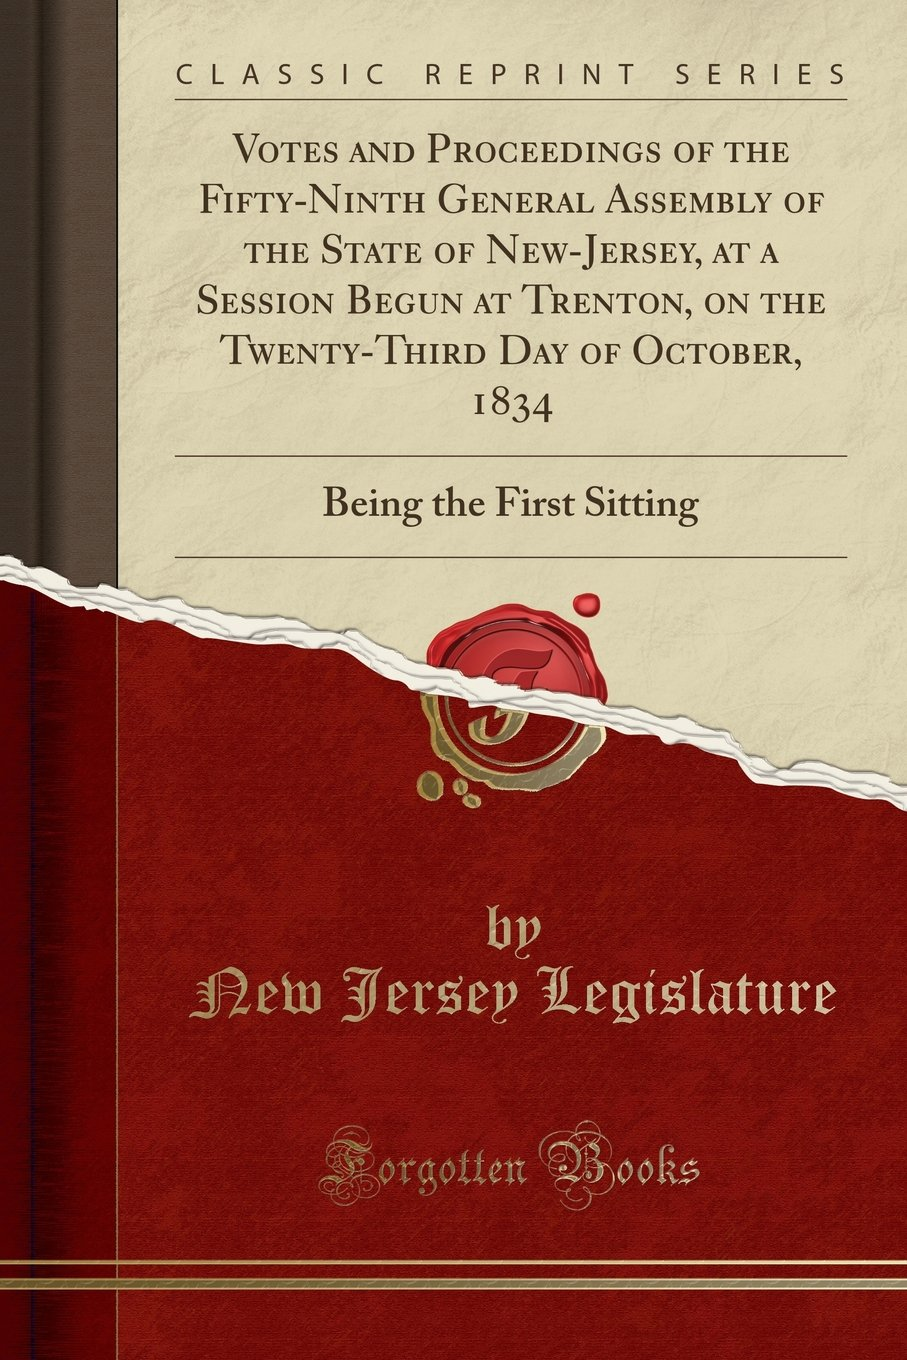 Votes and Proceedings of the Fifty-Ninth General Assembly of the State of New-Jersey, at a Session Begun at Trenton, on the Twenty-Third Day of October, 1834: Being the First Sitting (Classic Reprint) pdf epub